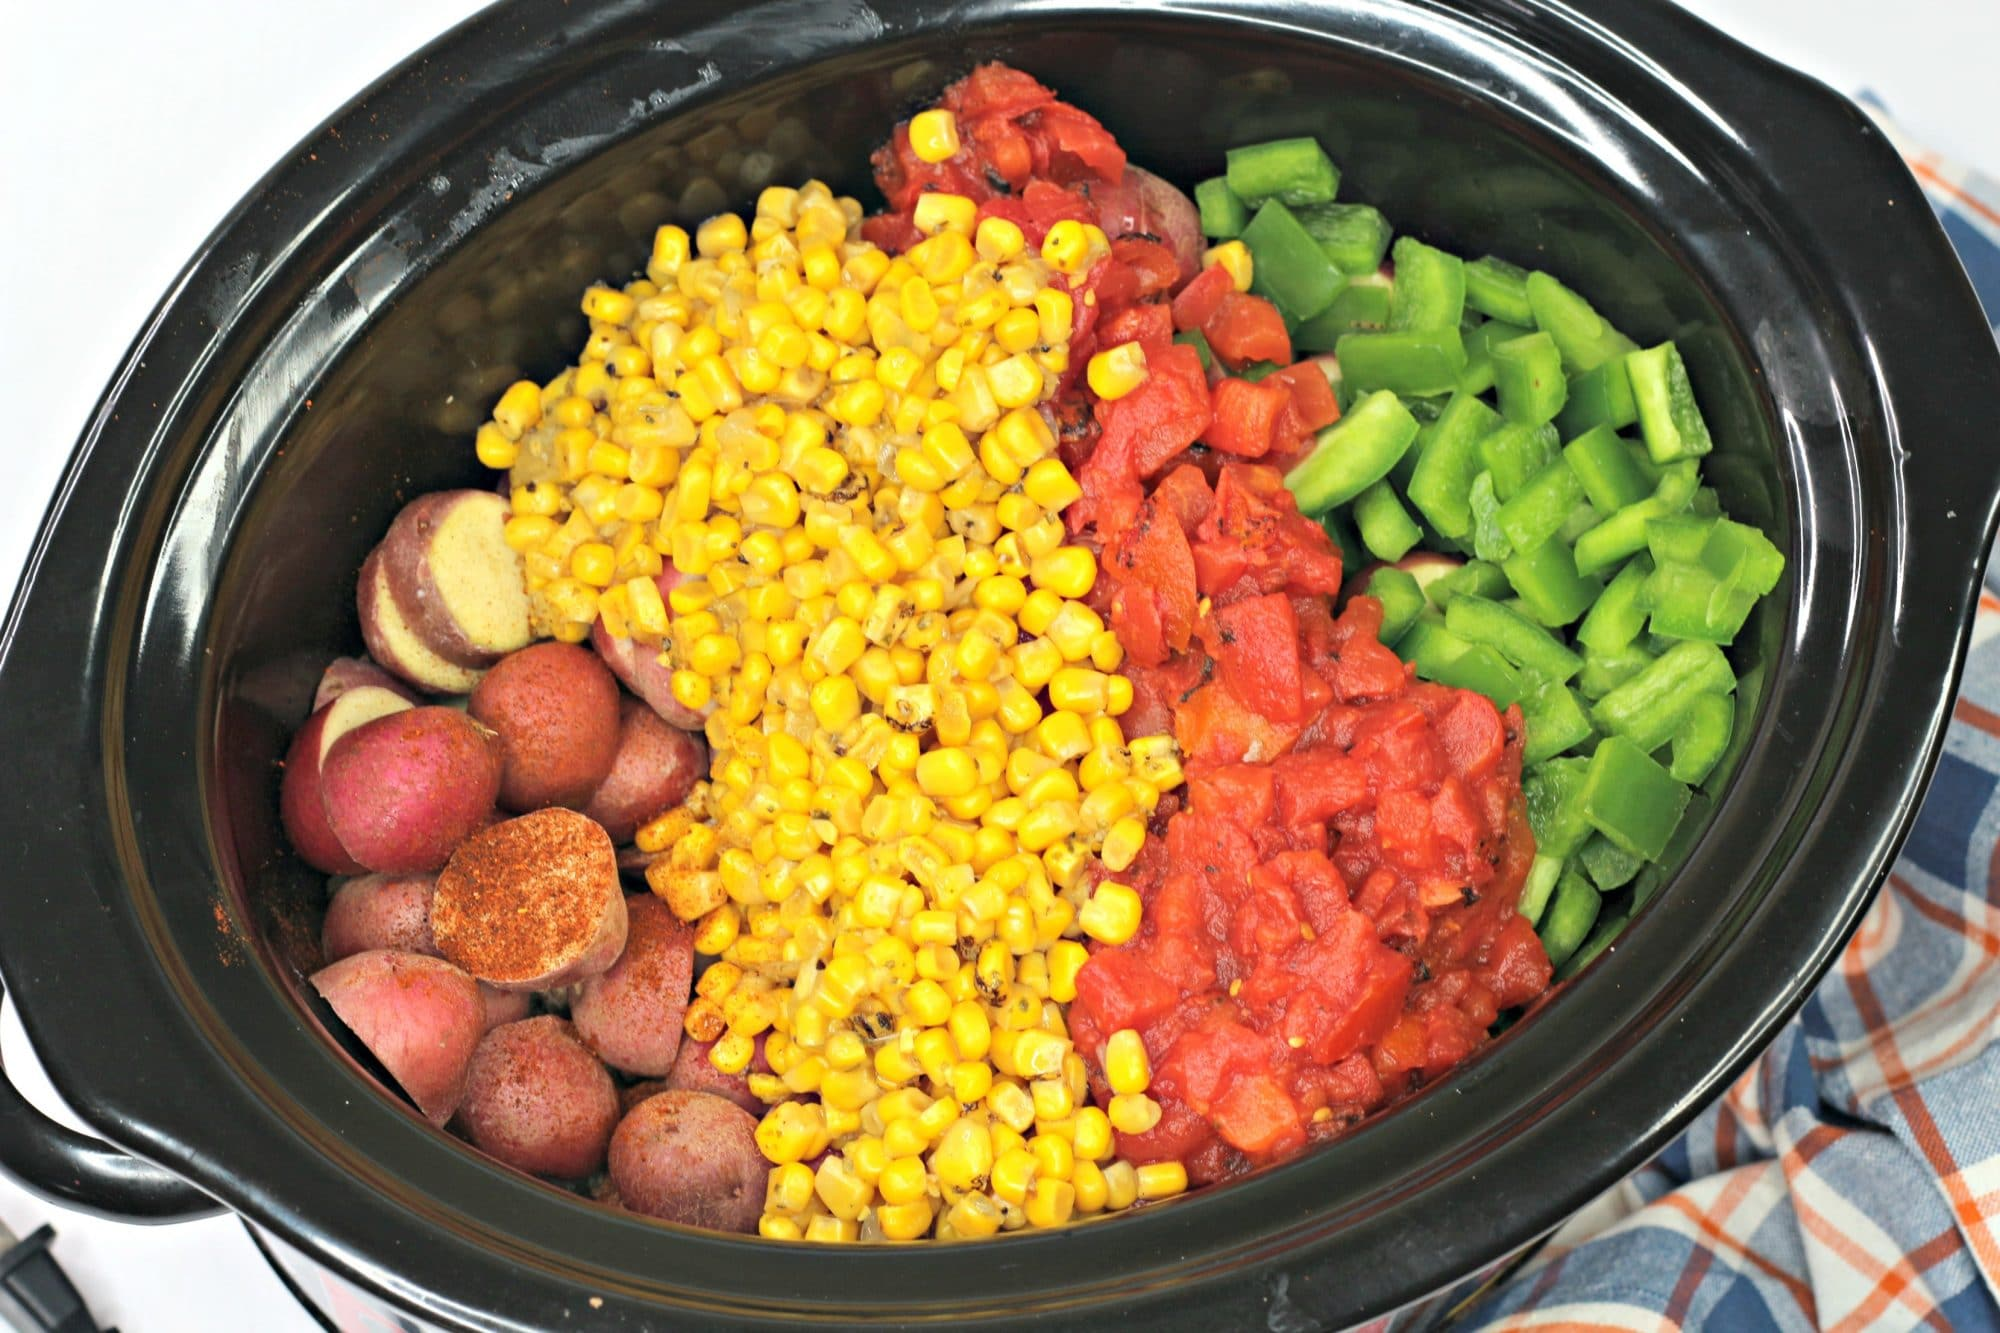 ingredients for slow cooker cowboy casserole